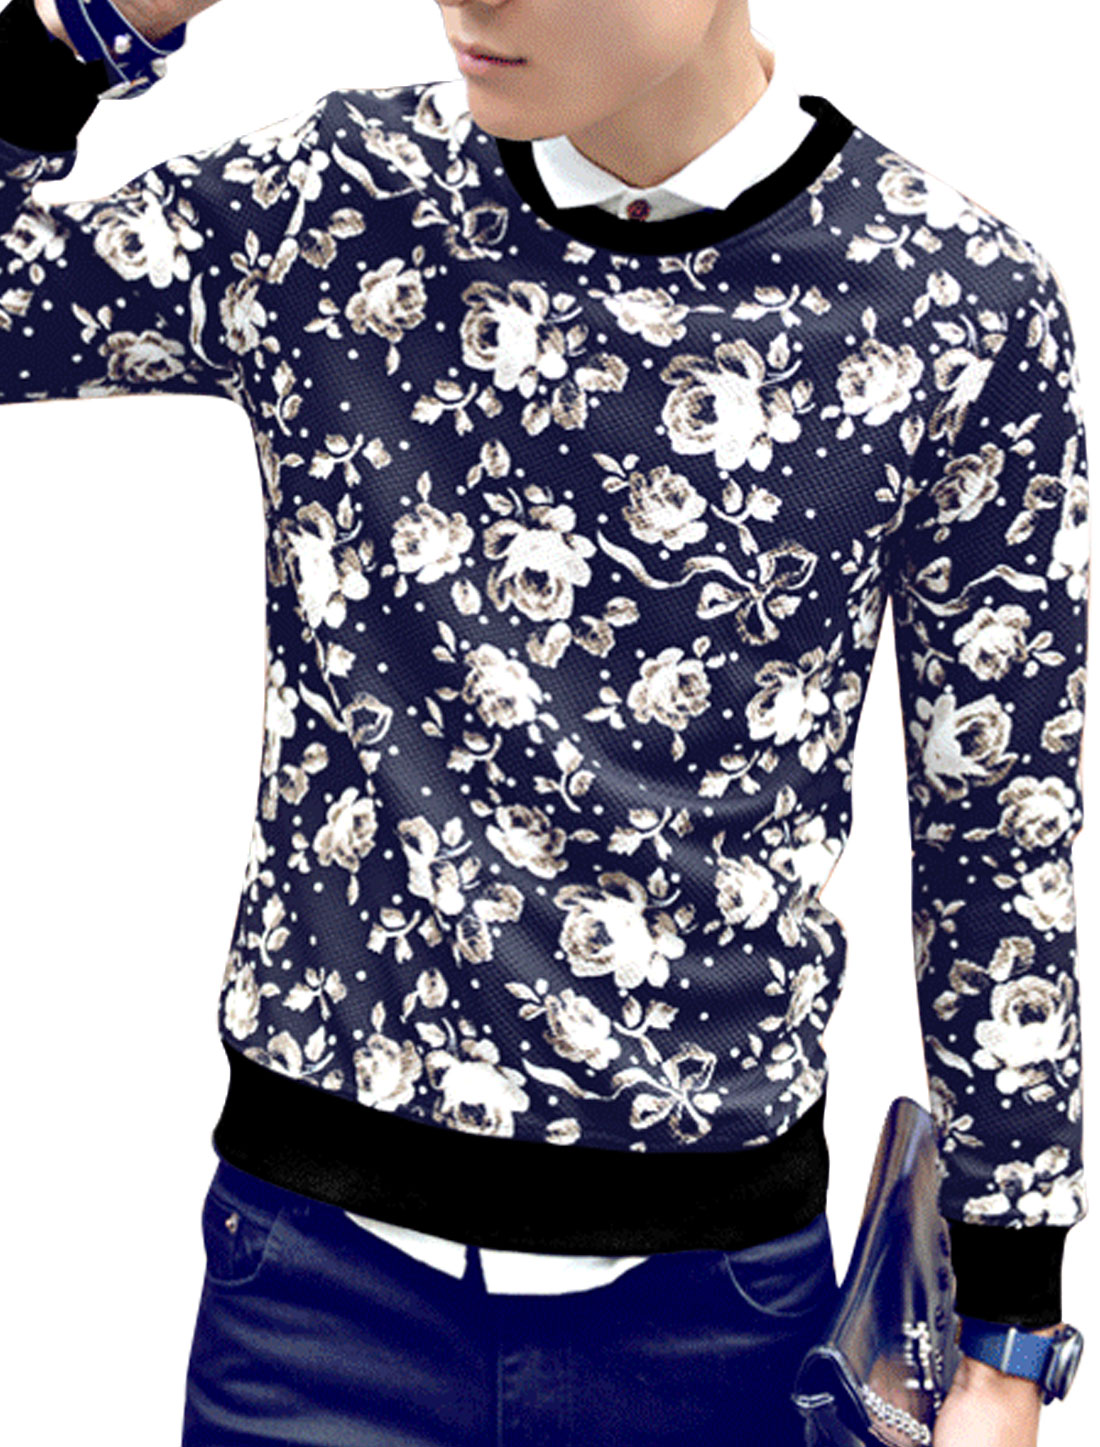 Men Round Neck Dots Flower Print Ribbed Trim Chic T-Shirt Navy Blue M